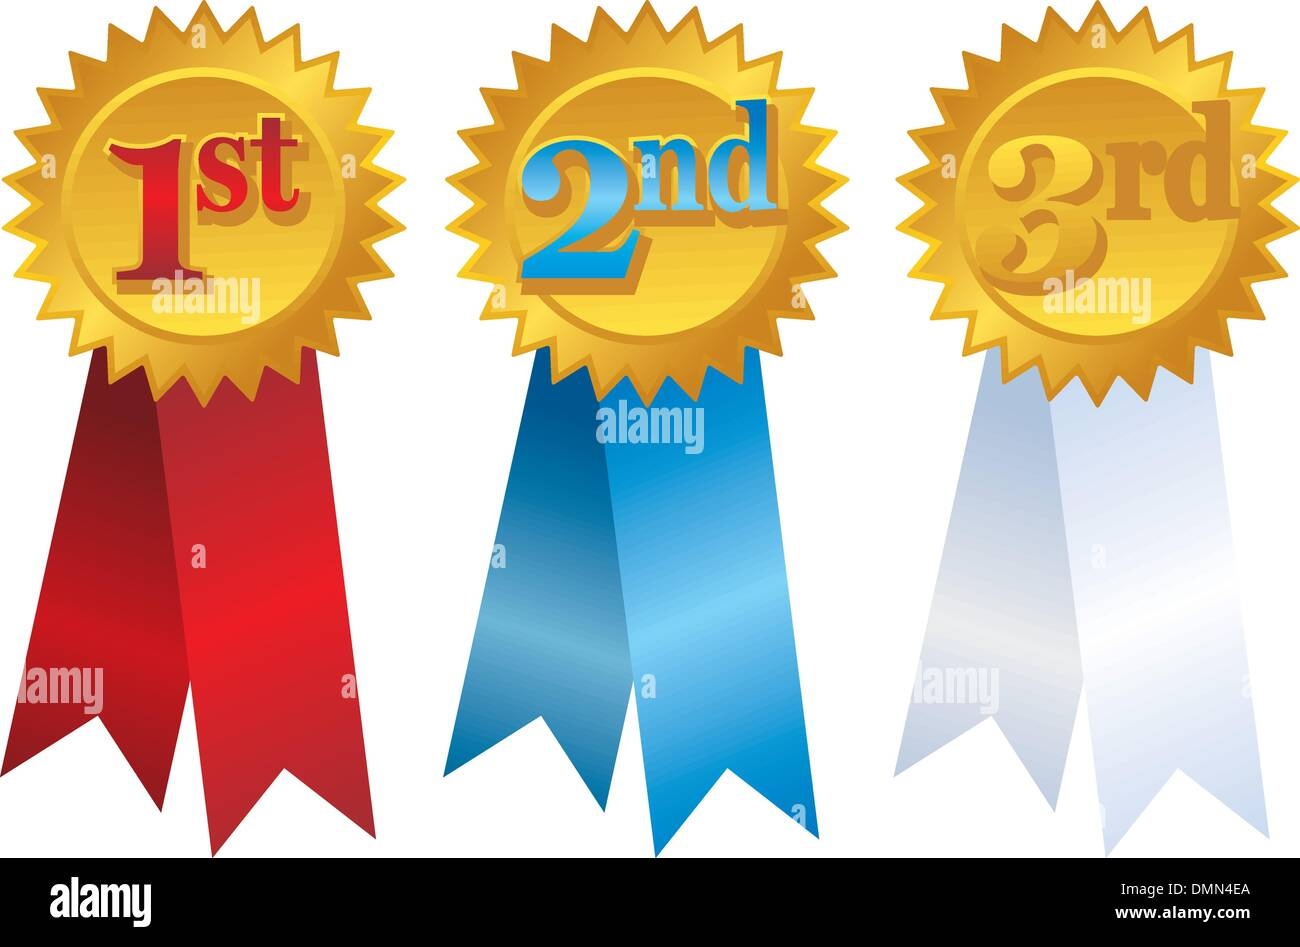 Vector Gold Award Ribbons With Place Numbers Stock Vector